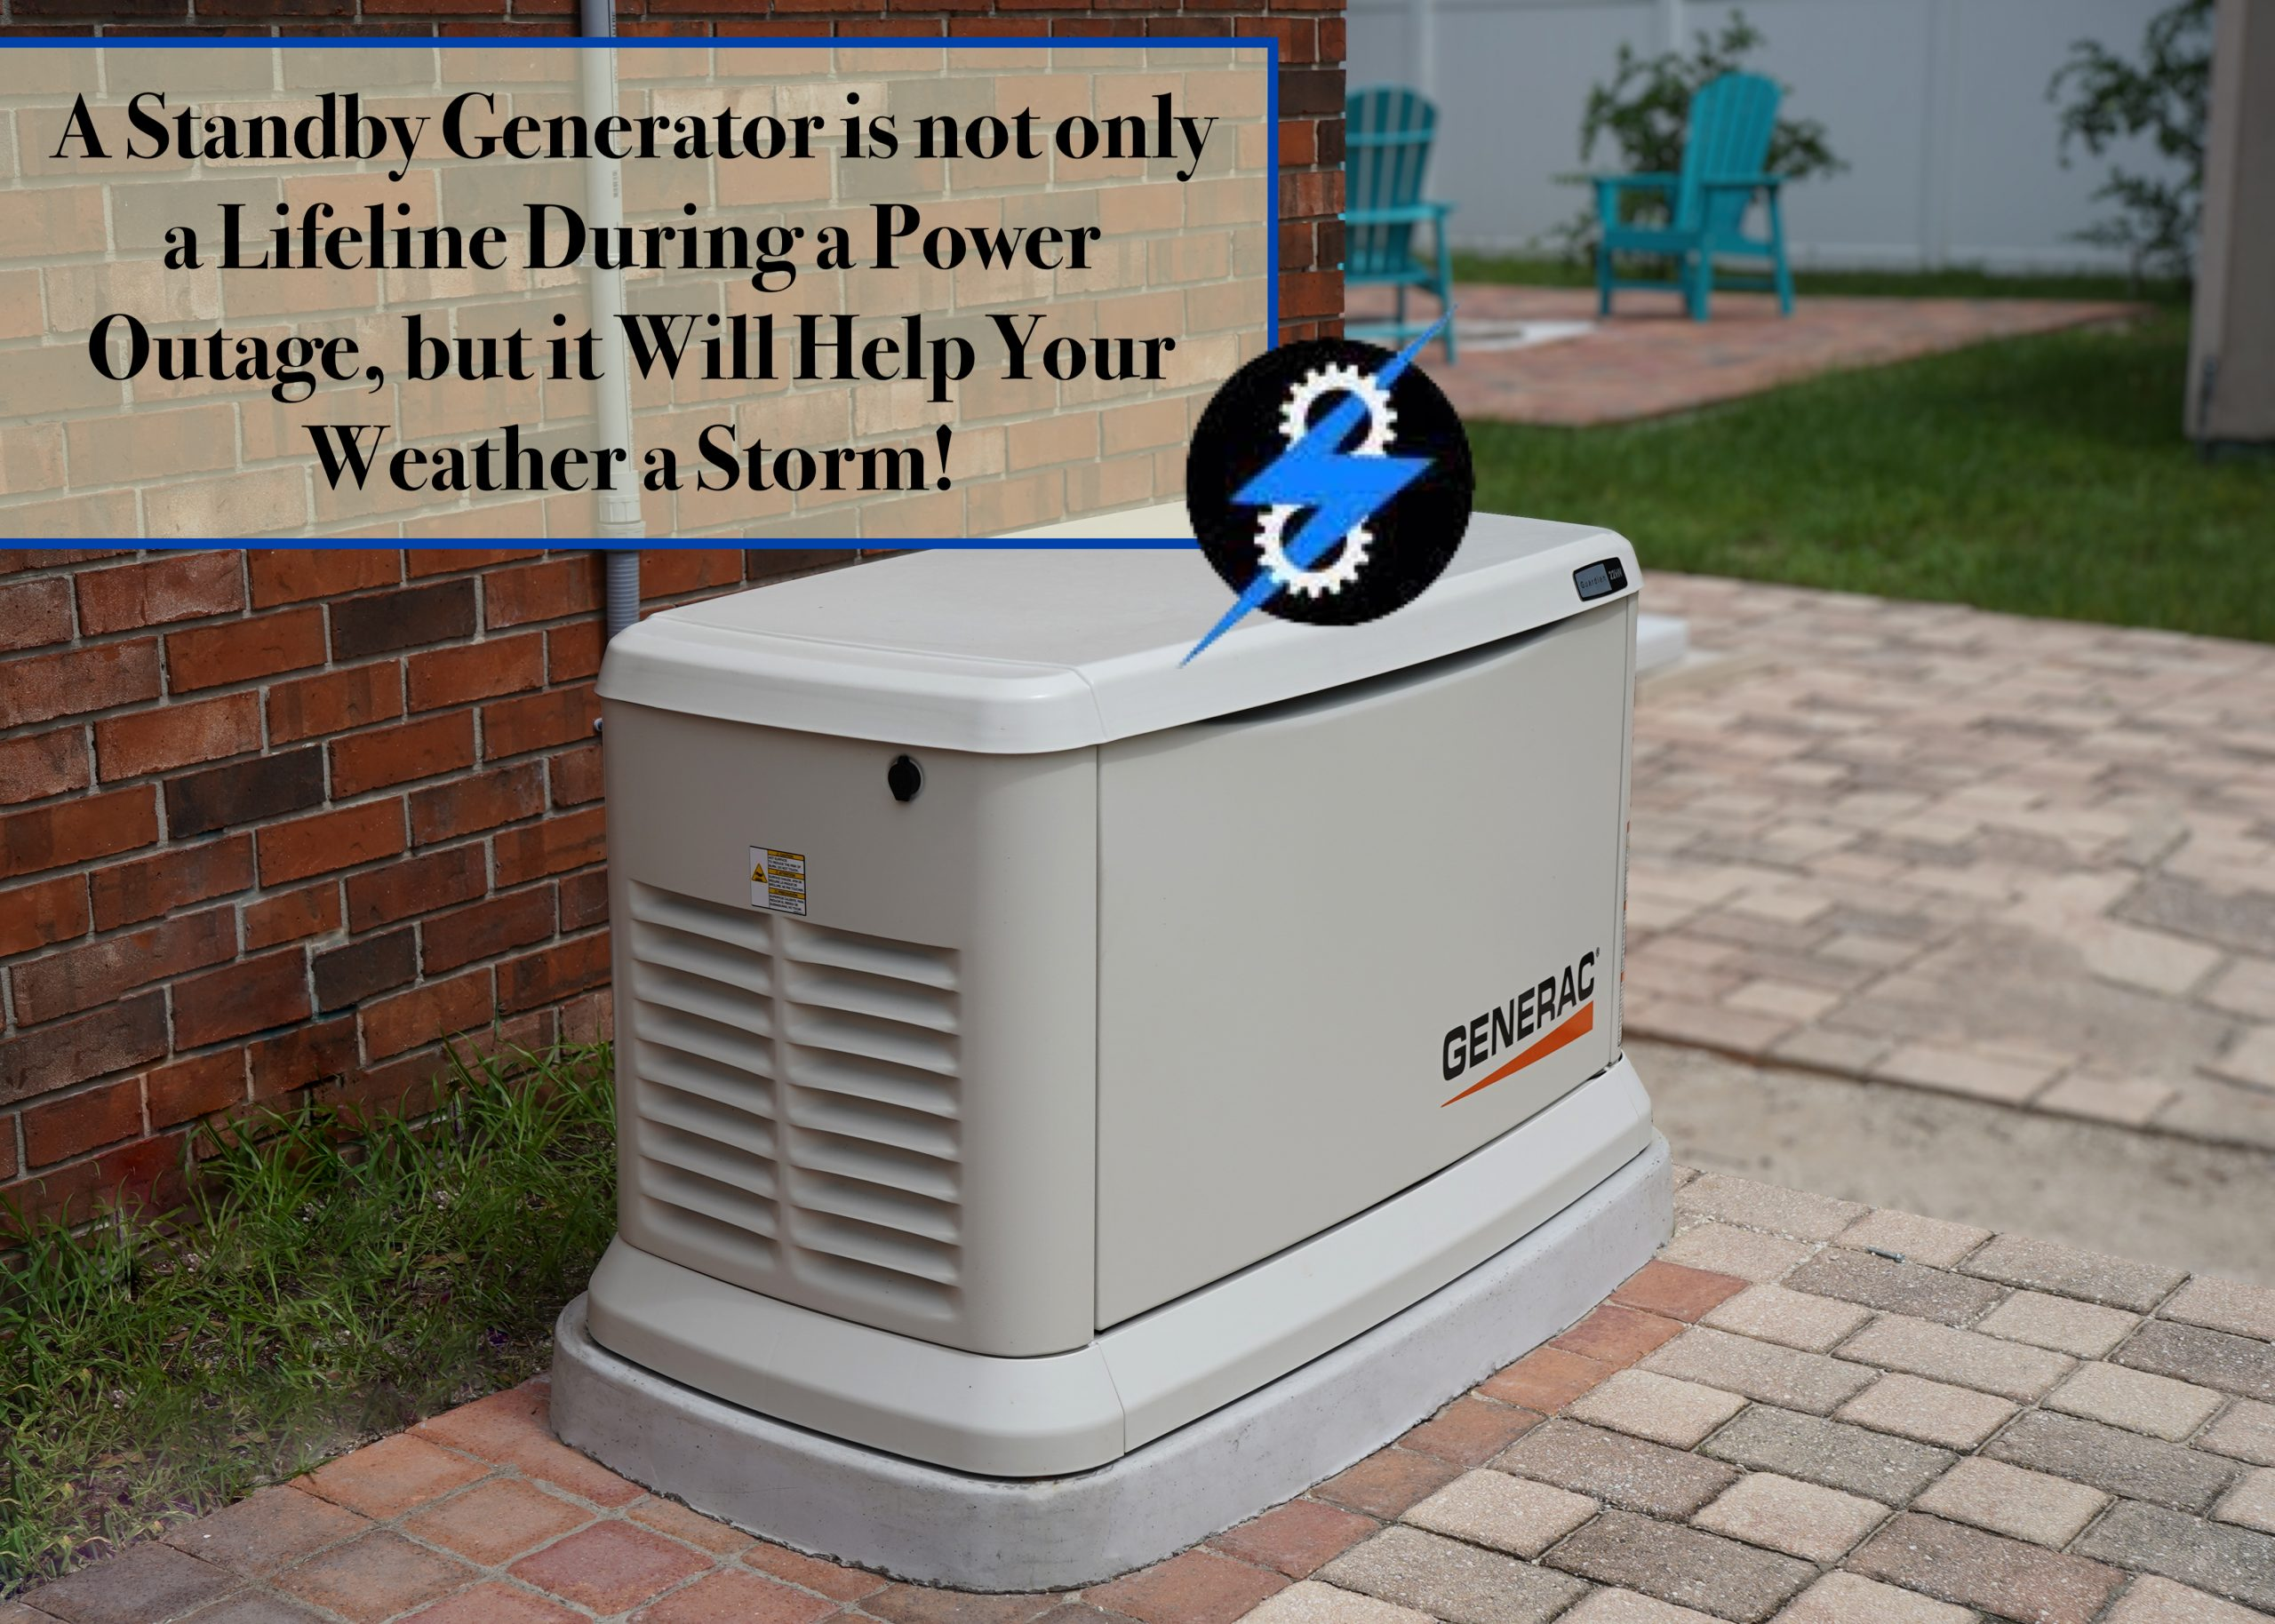 A standby generator is not only a lifeline during a power outage, but it will help you weather a storm.